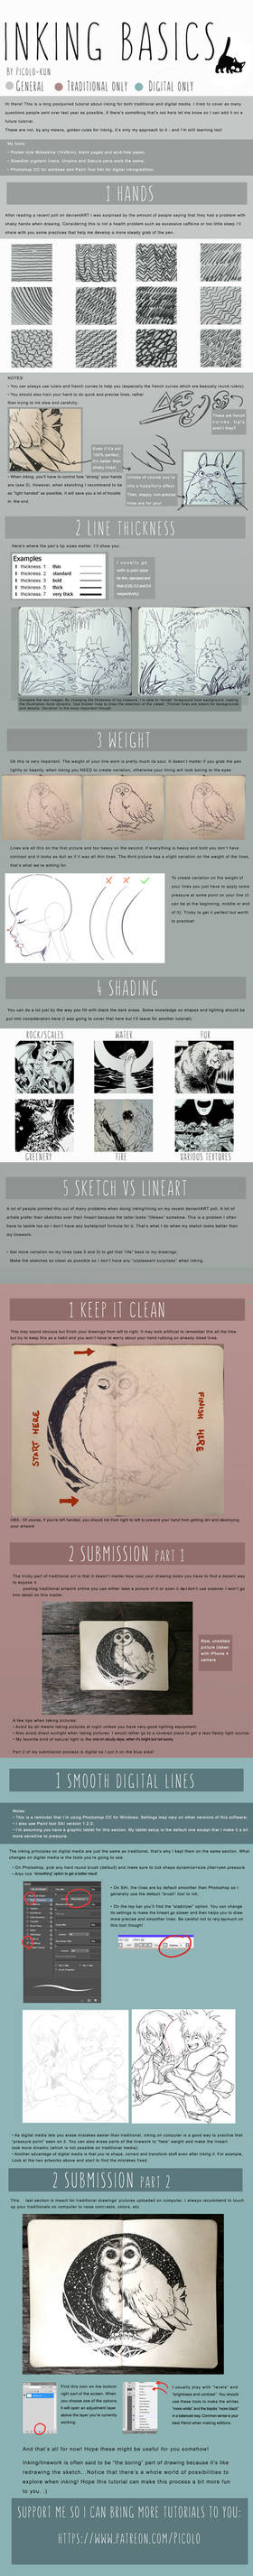 Inking Tutorial